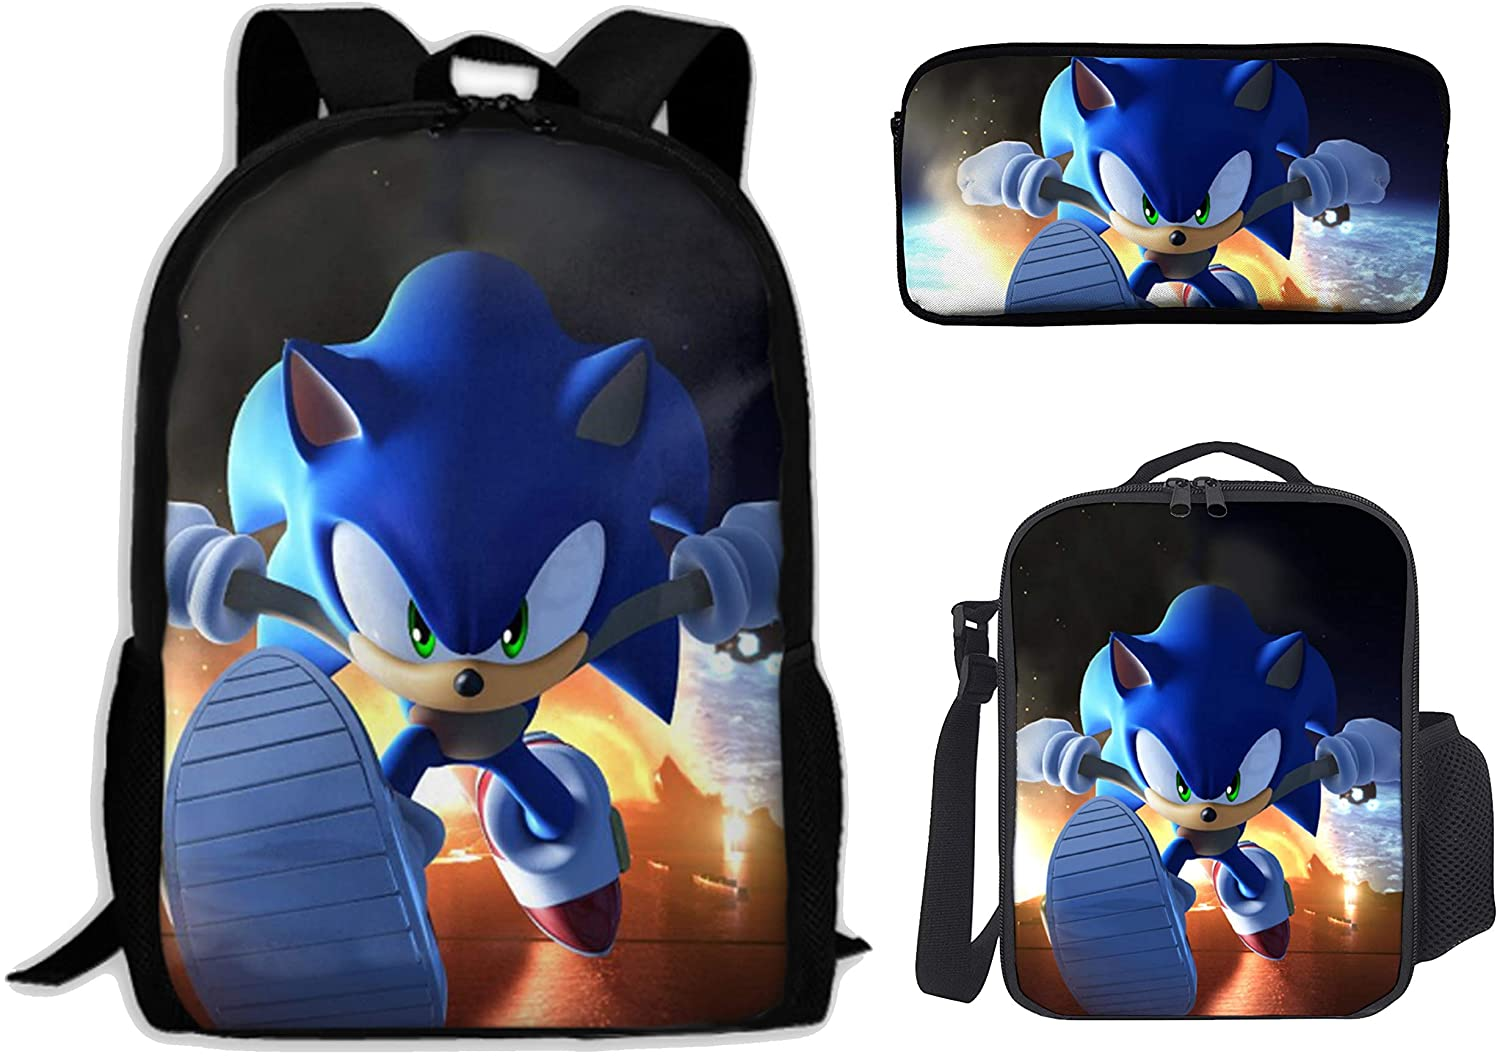 Sonic The Hedgehog 3 Pieces School Backpack Set With Lunch Bag Pencil Case For Boys Girls, Large Capacity